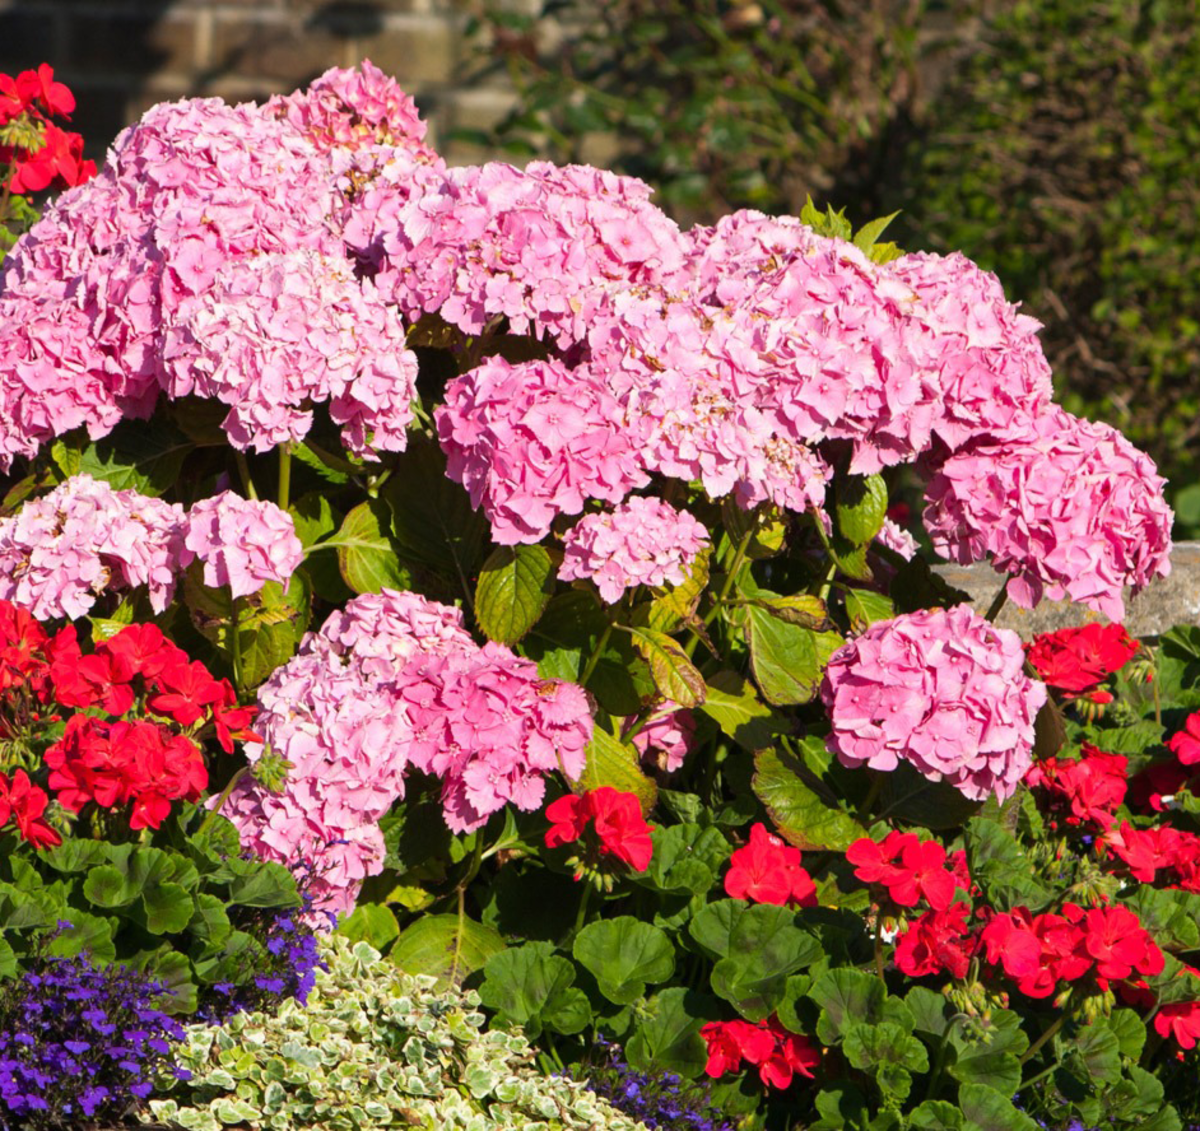 Hydrangeas can add great displays to borders.